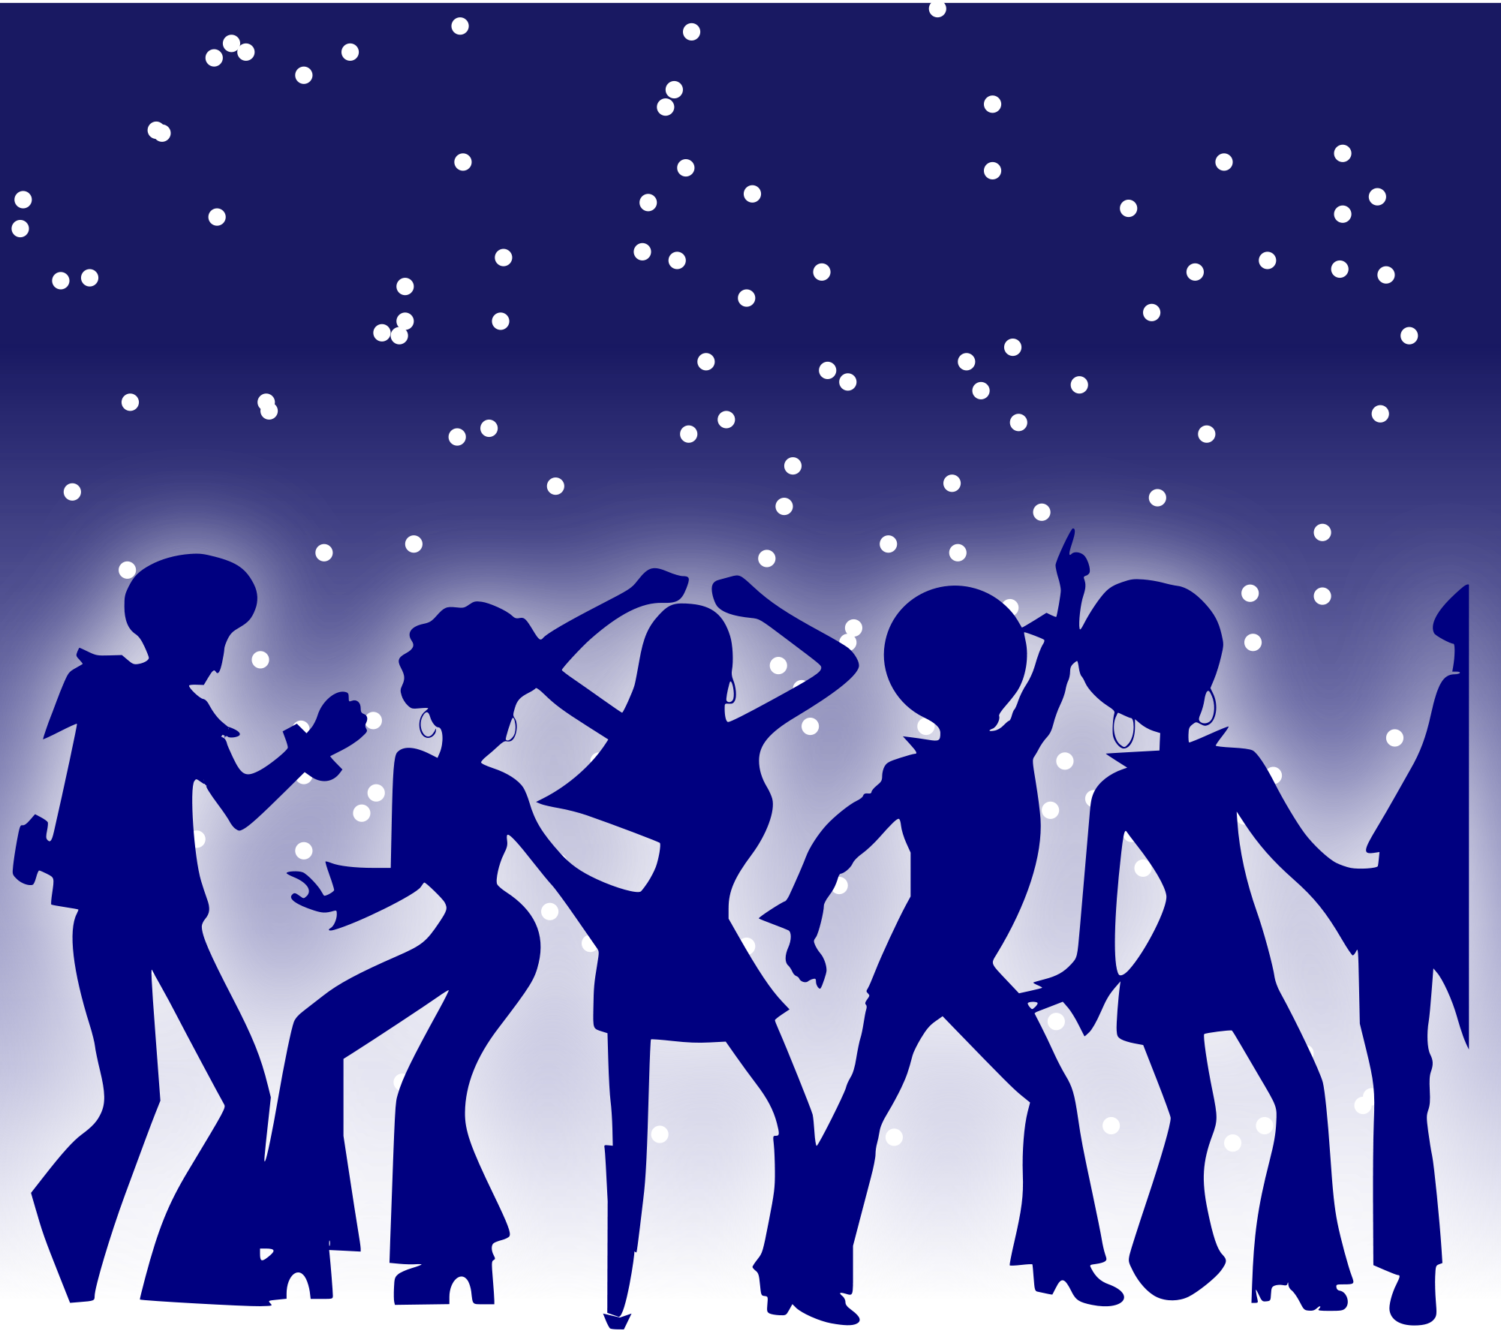 CREDIT: https://commons.wikimedia.org/wiki/File:Disco_Dancers.svg